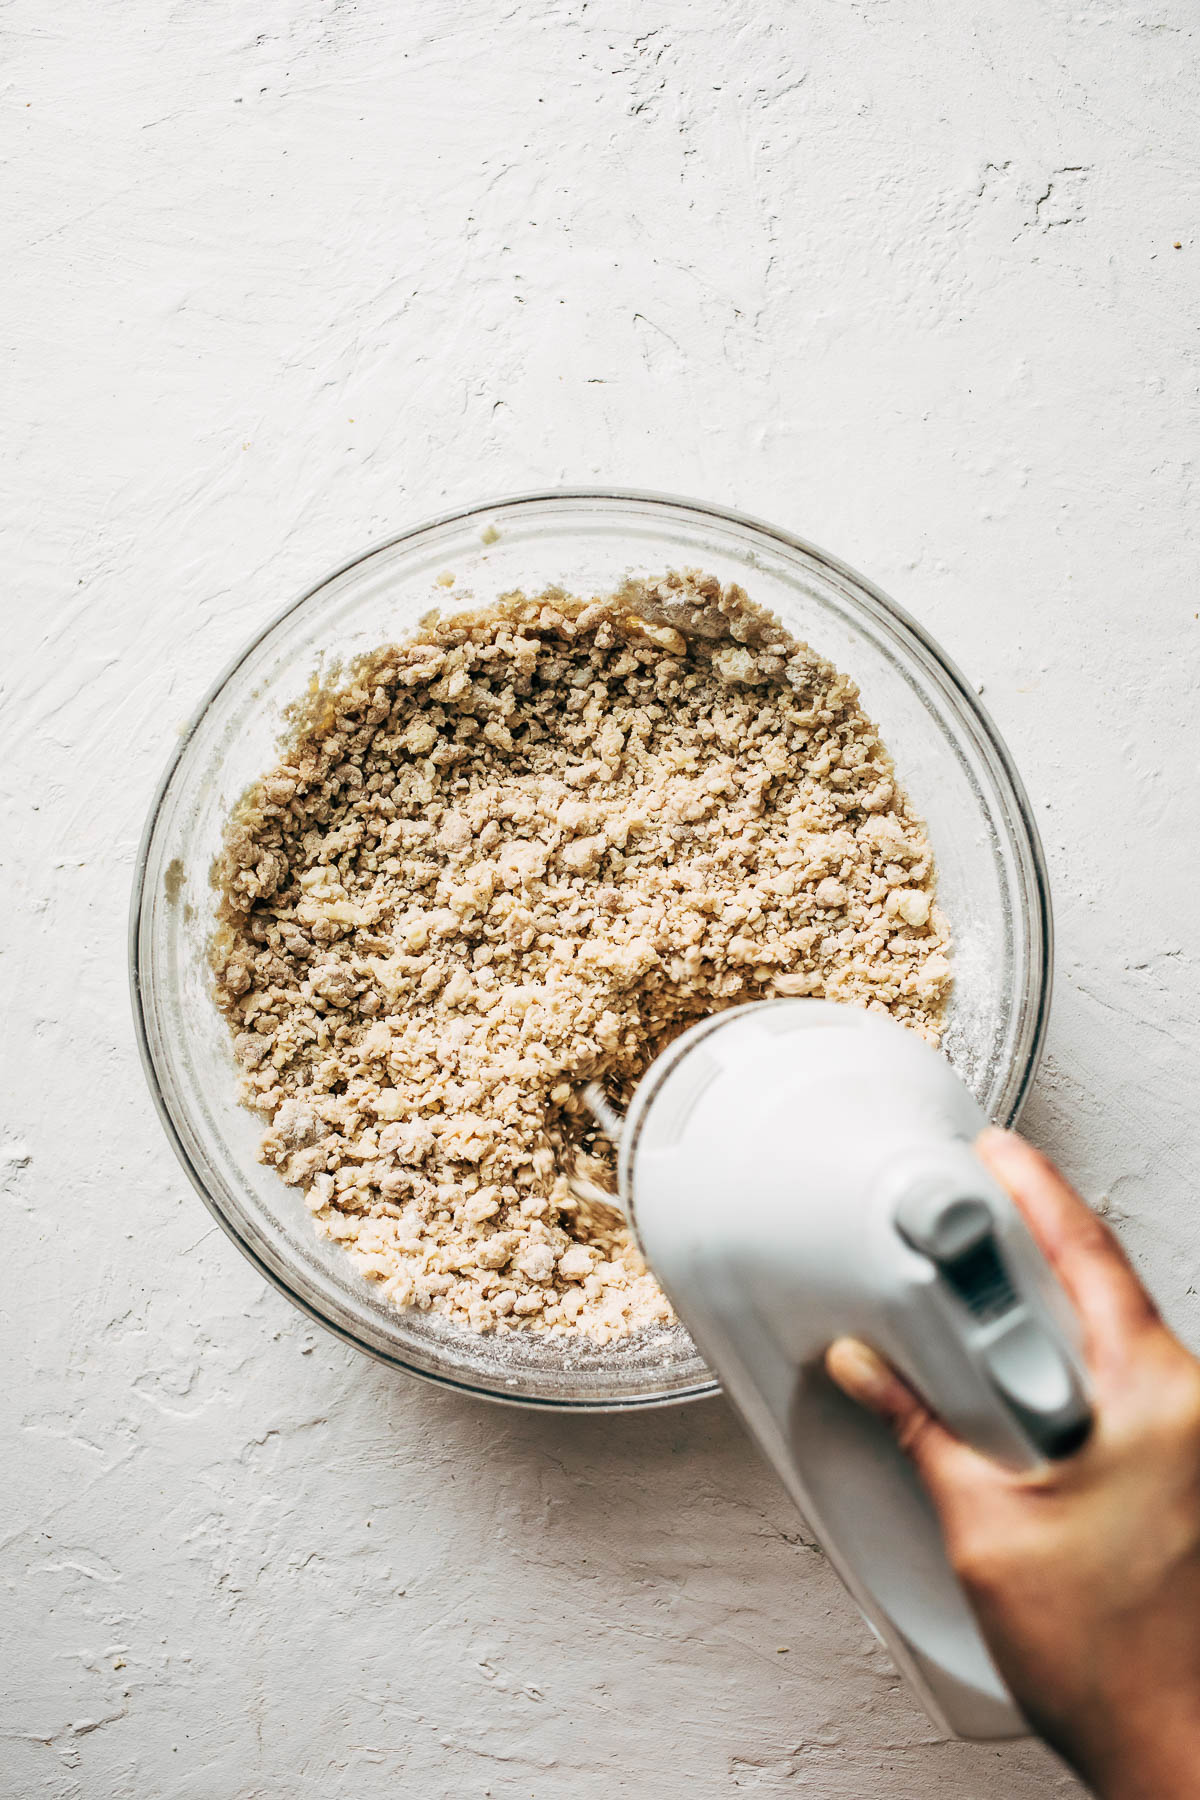 Cookie dough being mixed with an electric mixer.